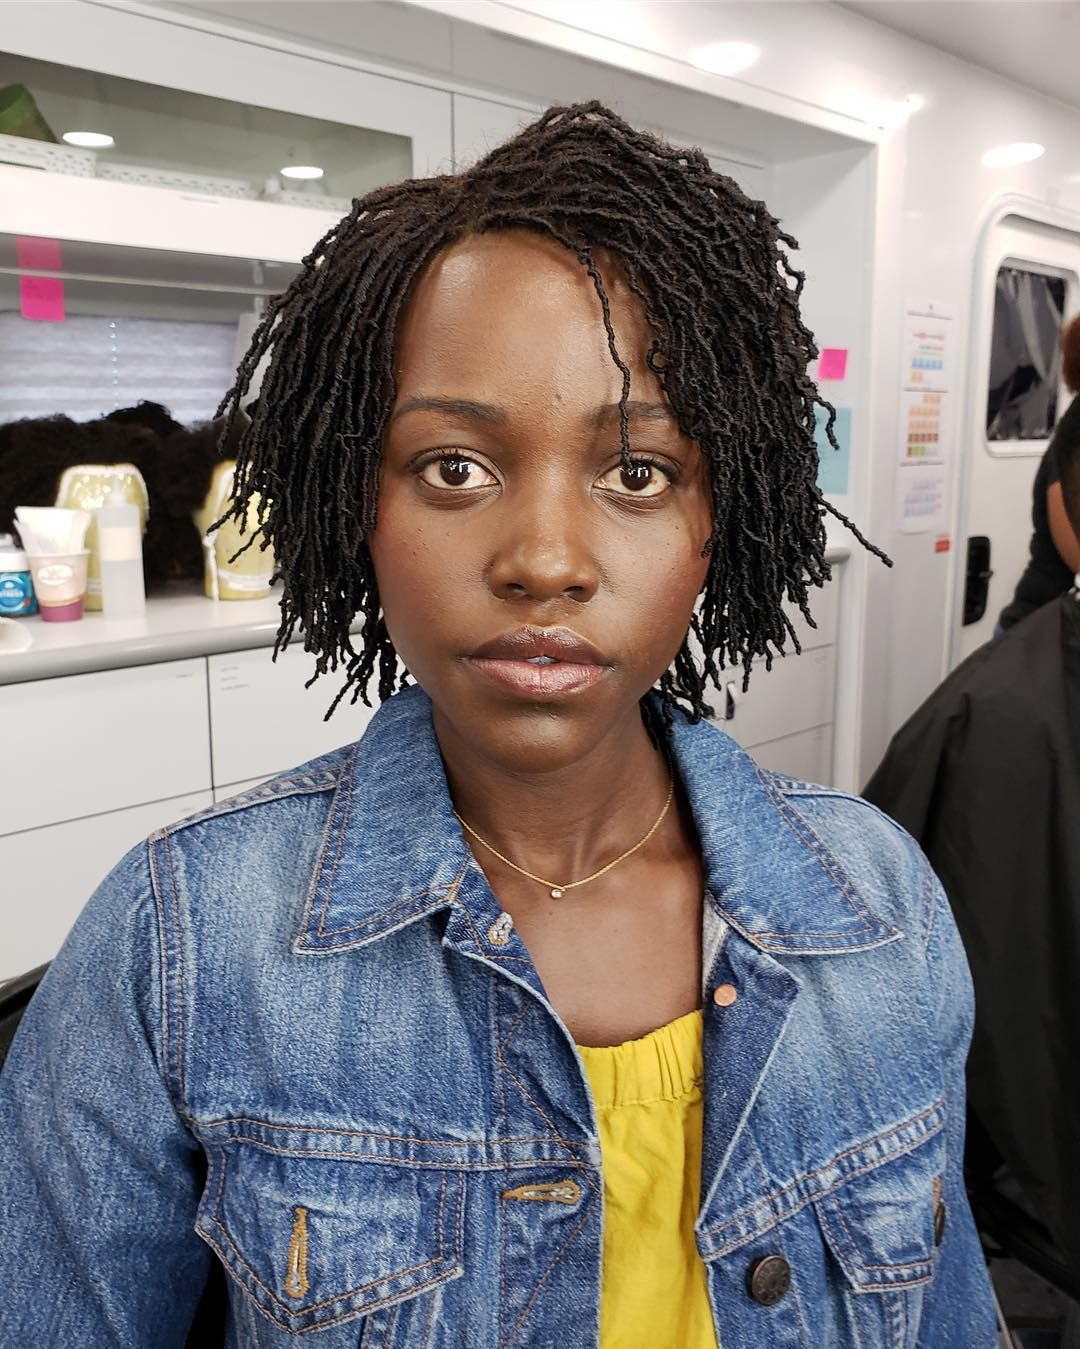 Lupita Nyong O On Instagram Before Us After Us We Re In Theaters Today Usmovie Bts Adelaideandred Camille Lupita Nyongo This Is Us Movie Black Women